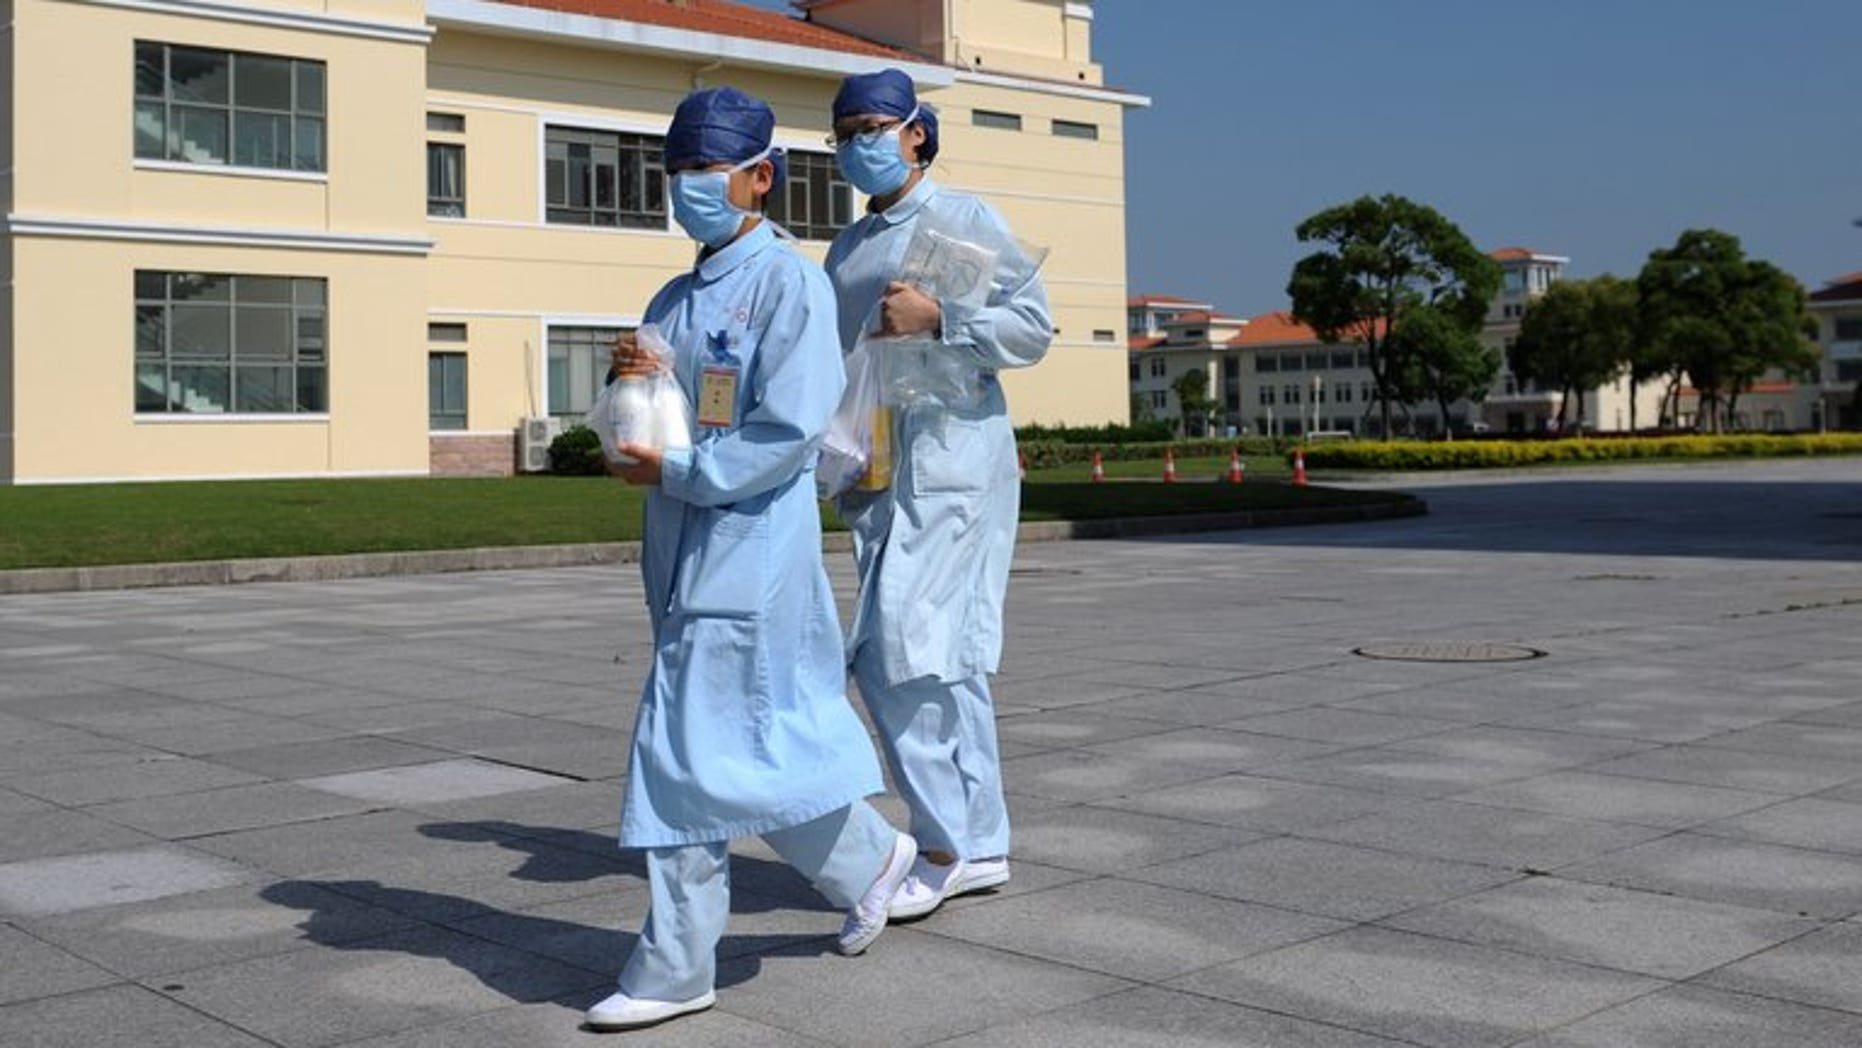 """In this photo taken on May 14, 2013 two nurses walk outside an isolation hospital in southwest Shanghai. The H7N9 bird flu that hit China this year killed over a third of hospitalised patients, said researchers Monday who labelled the virus """"less serious"""" but probably more widespread than previously thought."""